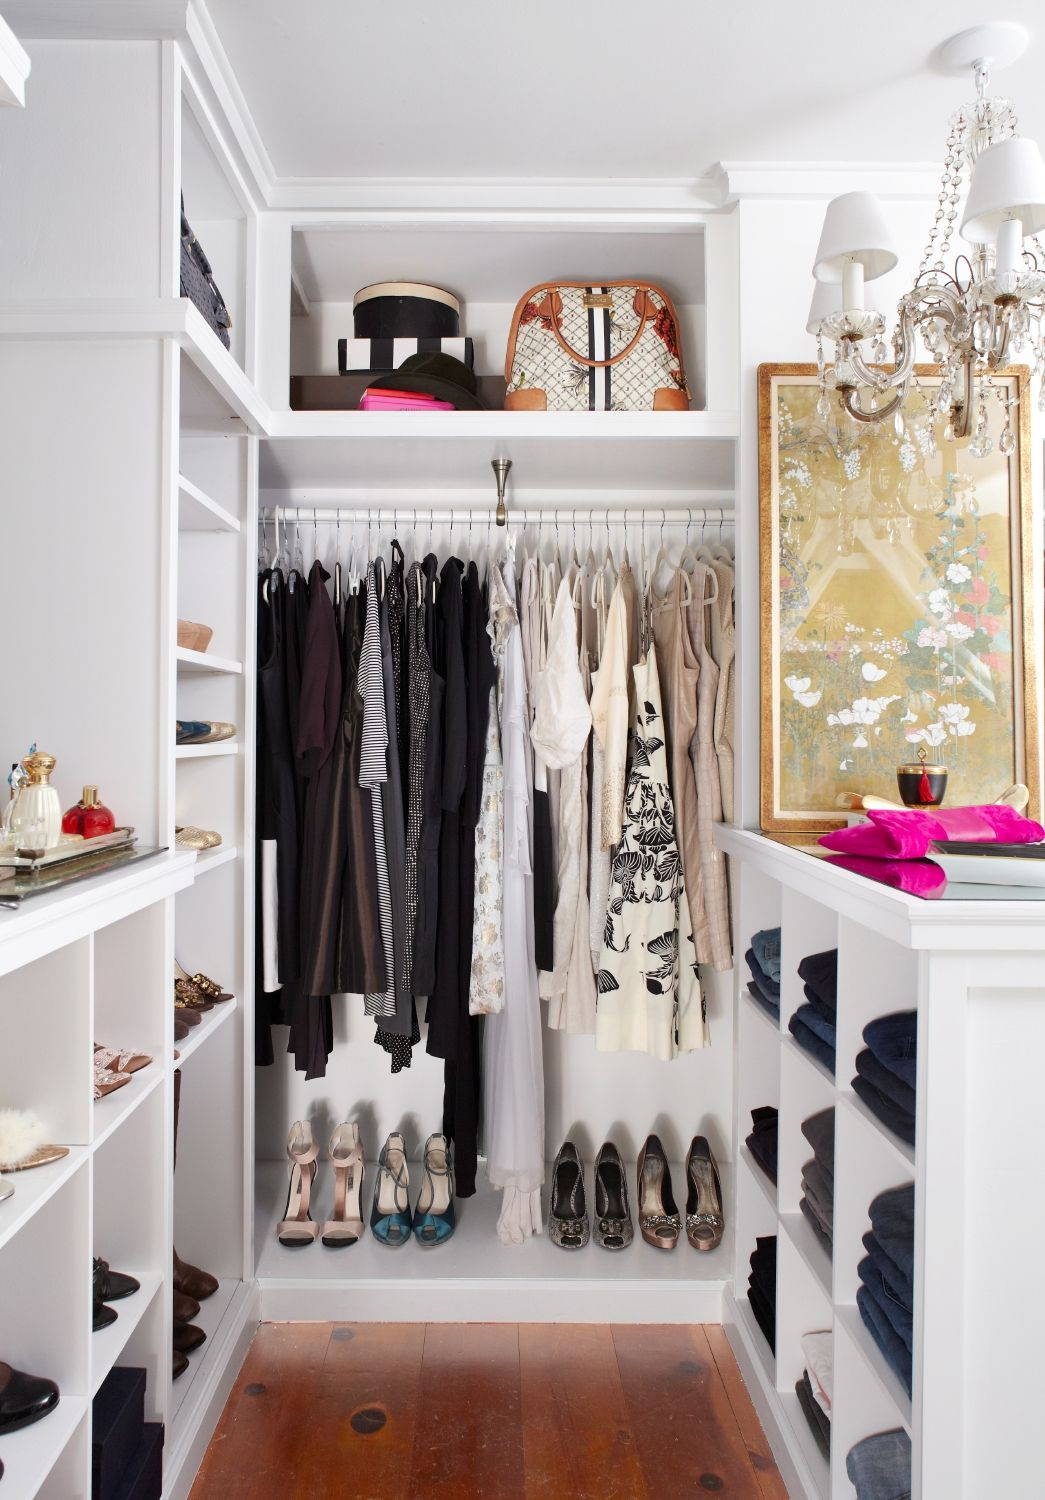 12 small walk in closet ideas and organizer designs for Designs for walk in closets